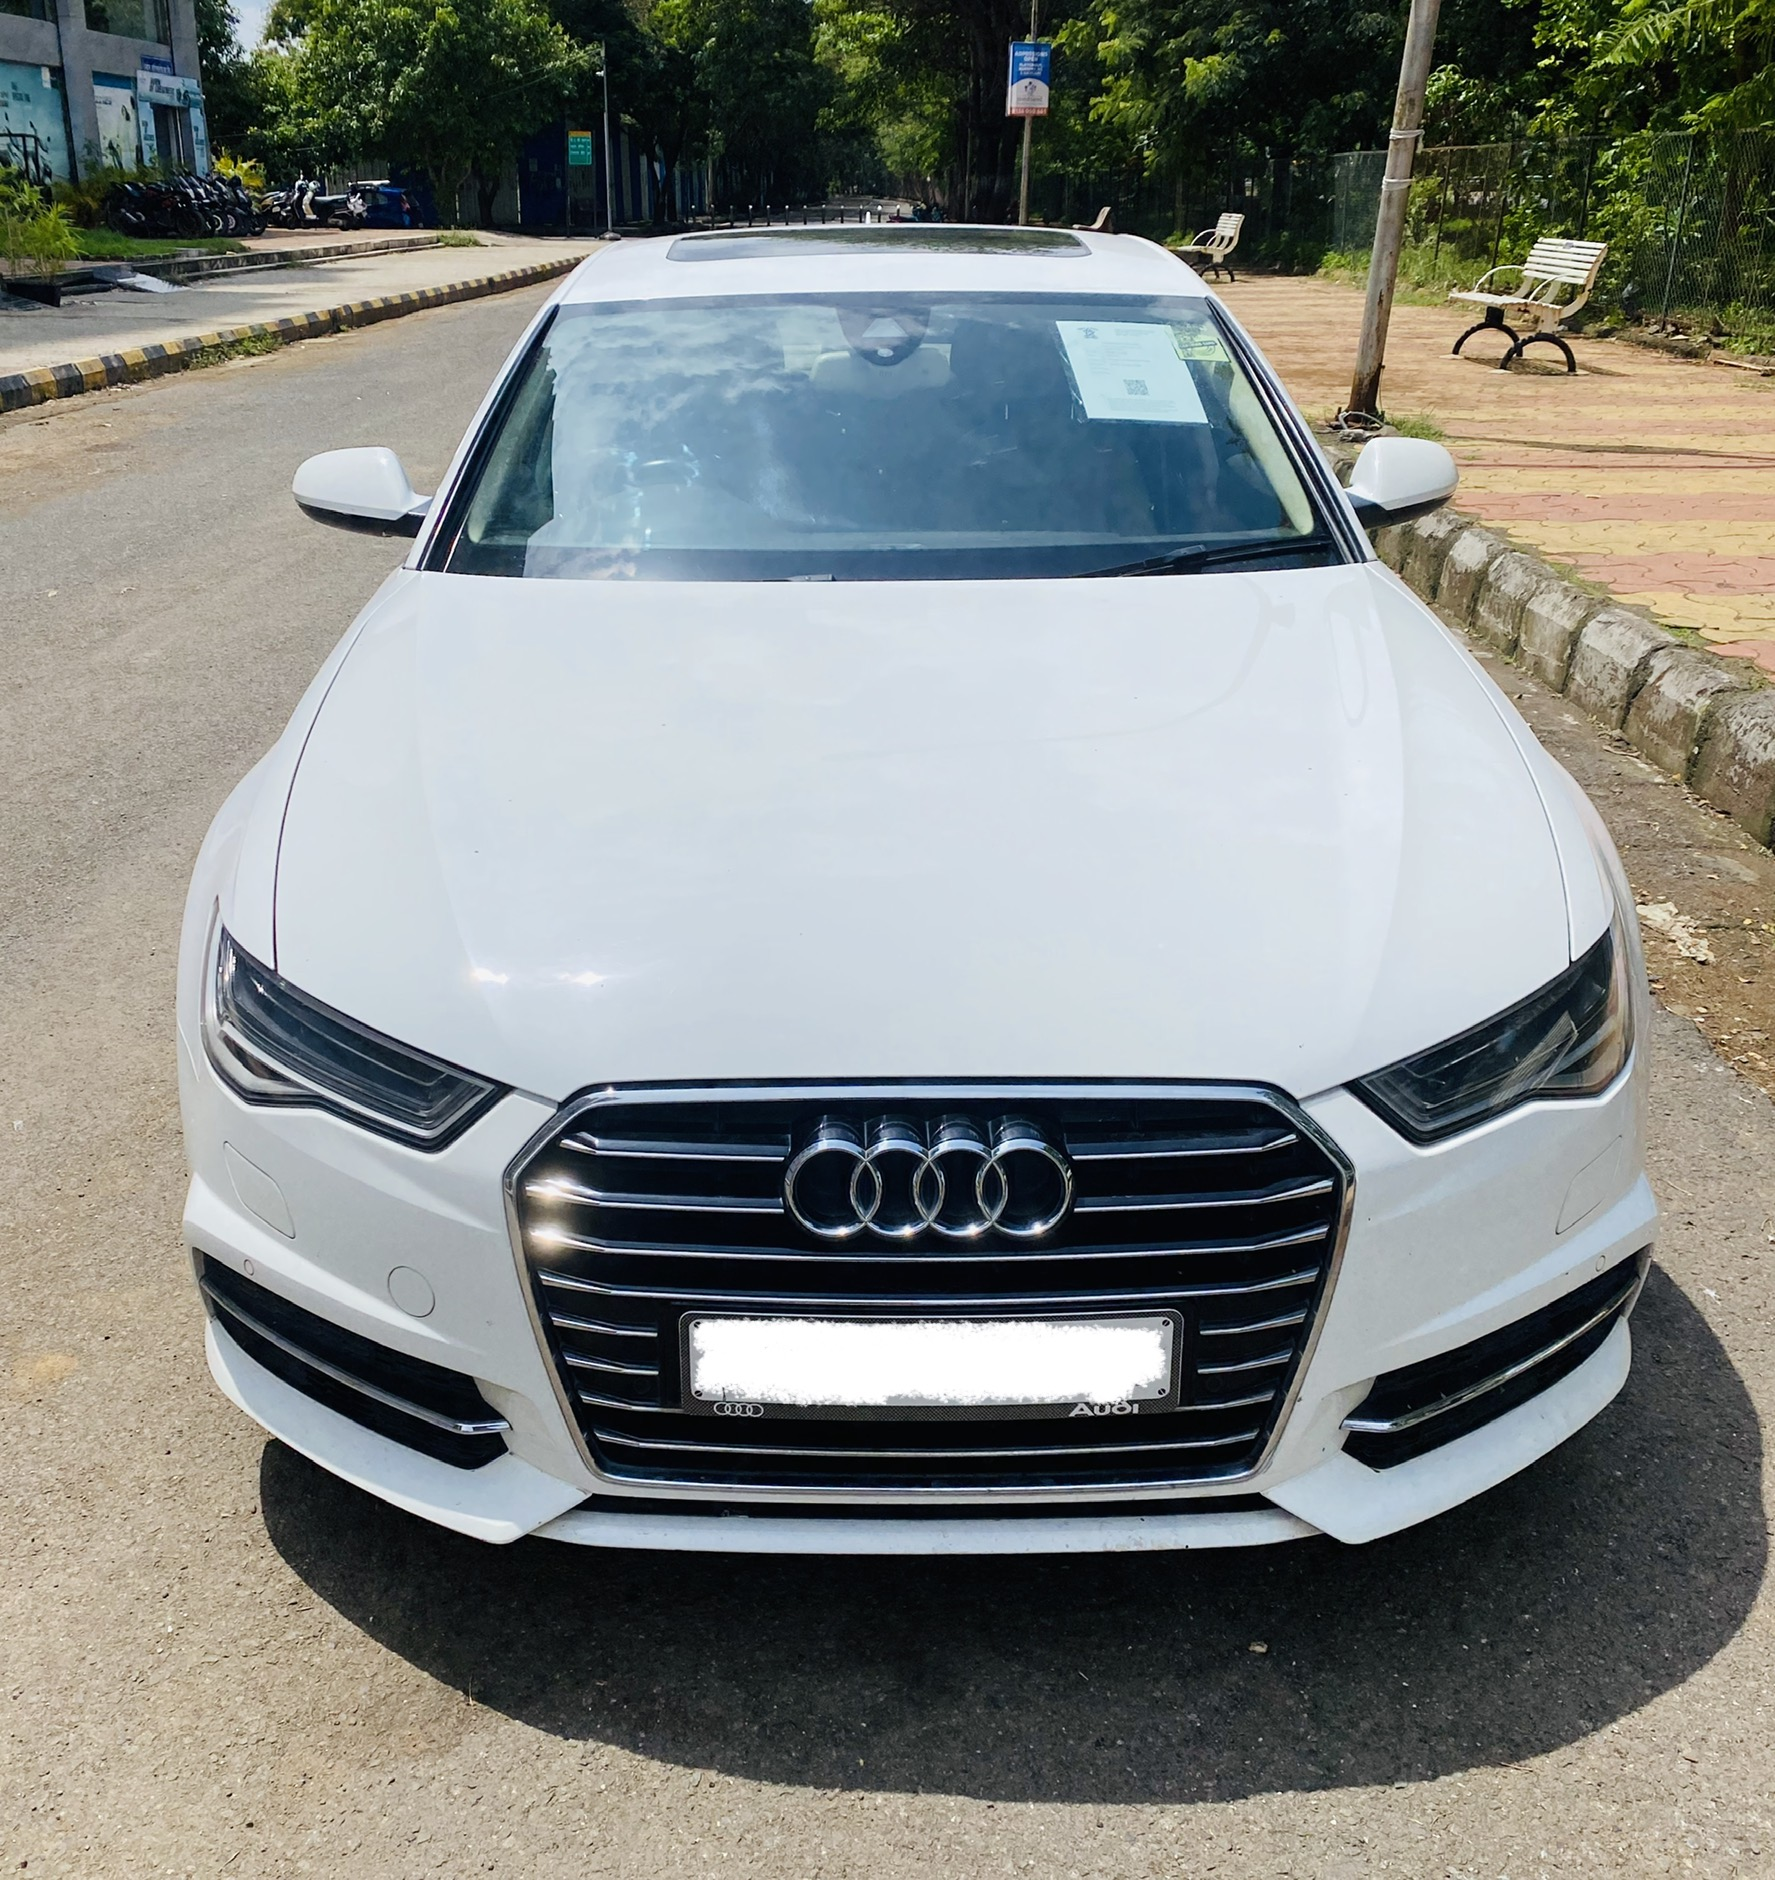 2016 Used AUDI A6 3.0 TDI PREMIUM PLUS